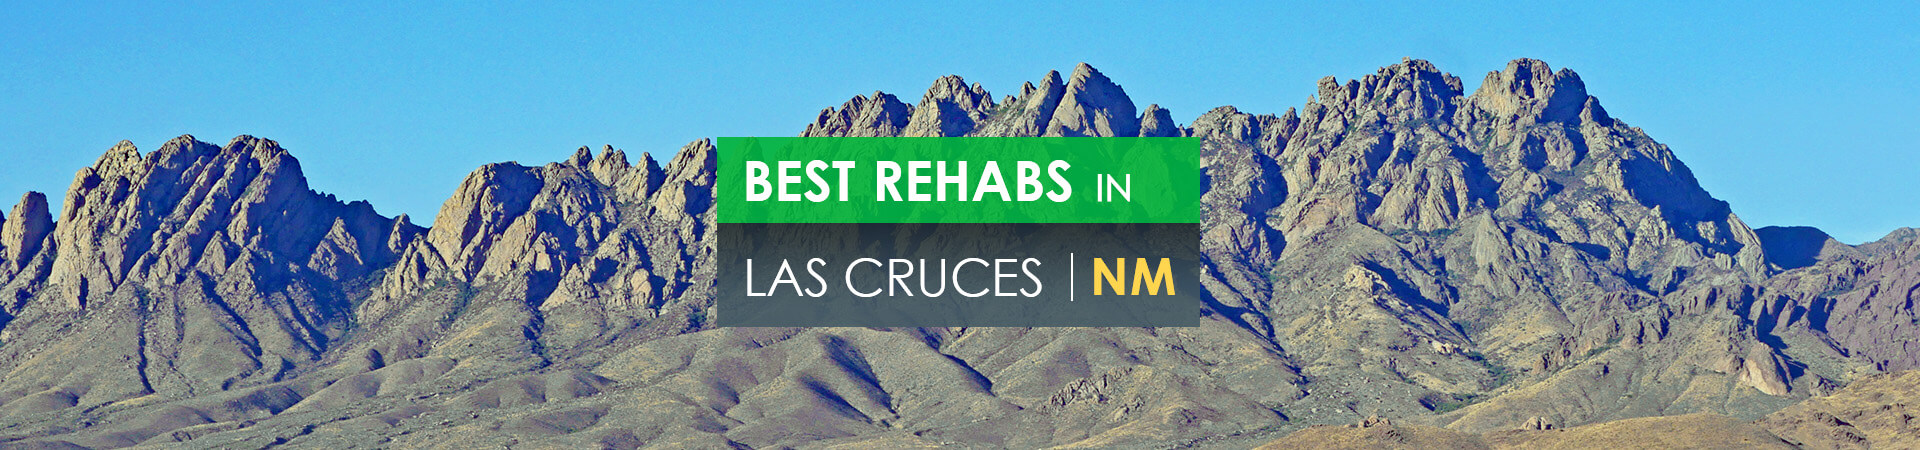 Best rehabs in Las Cruces, NM